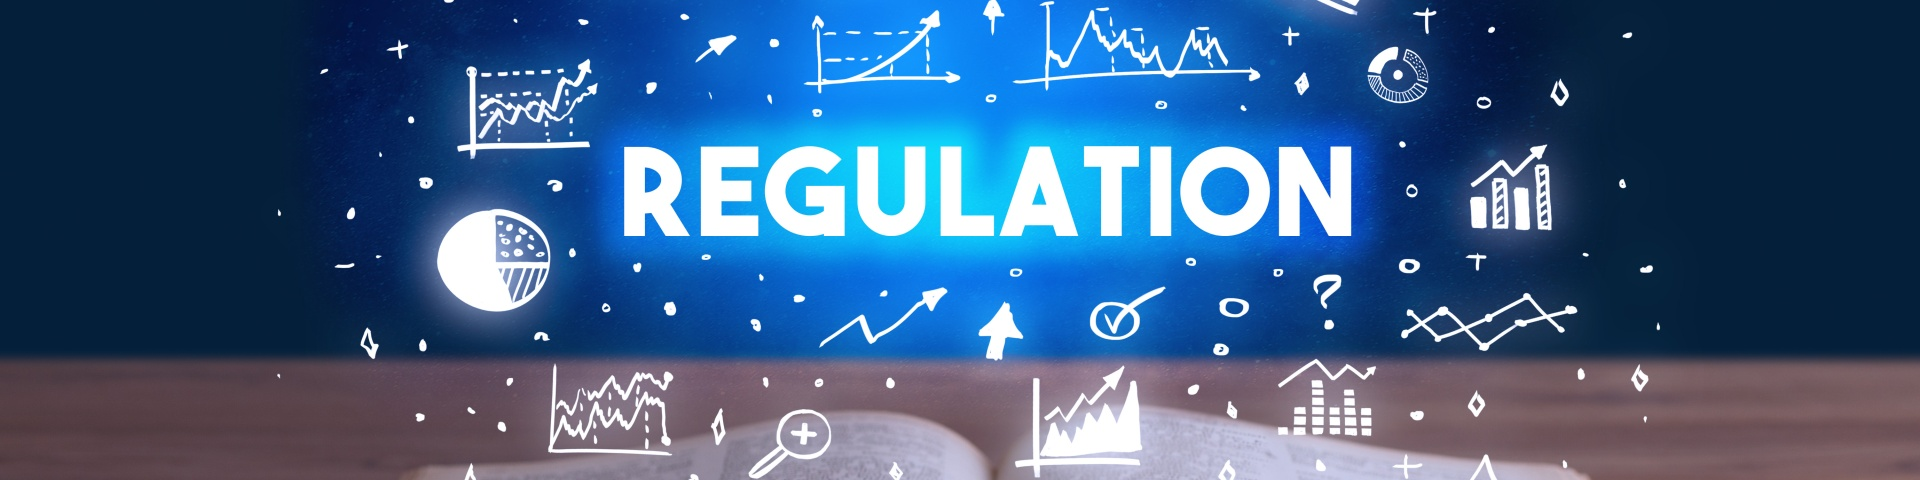 COVID-19 and implementation of regulatory requirements